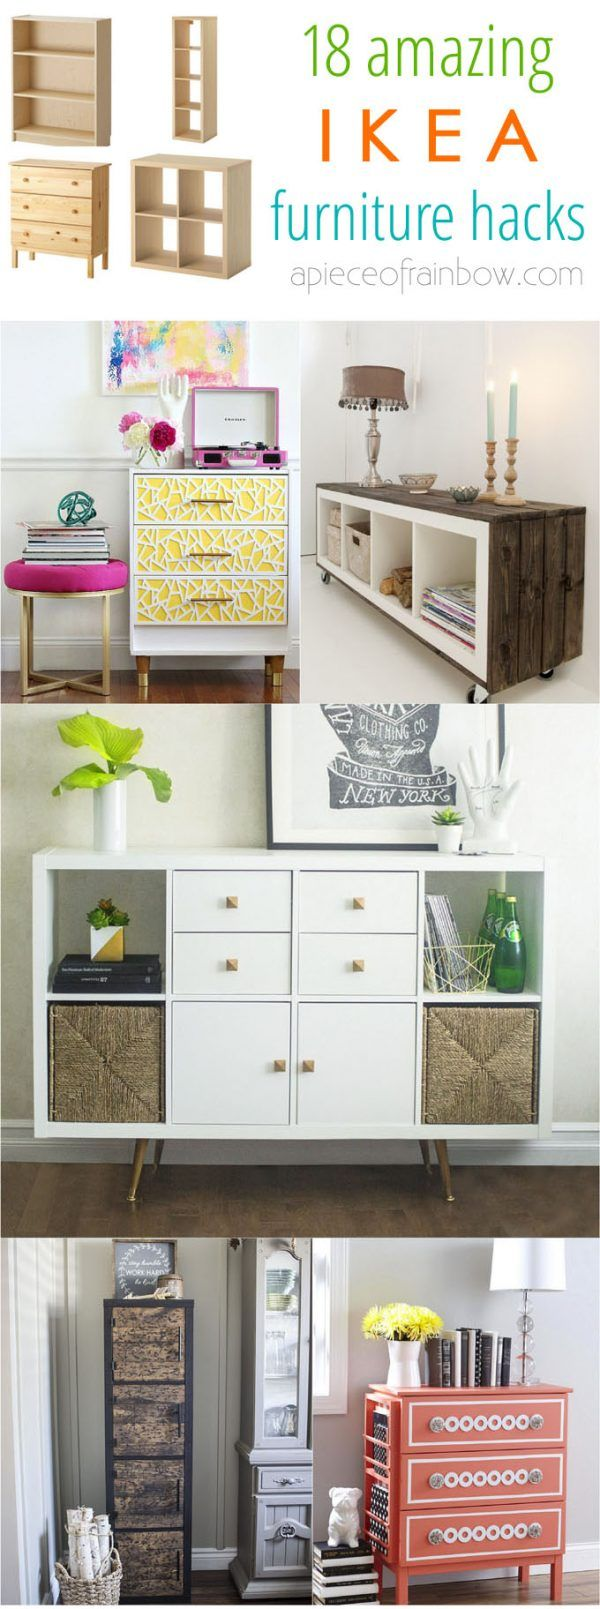 Best 25+ Smart furniture ideas on Pinterest | Smart table, Convertible  furniture and Space saving table